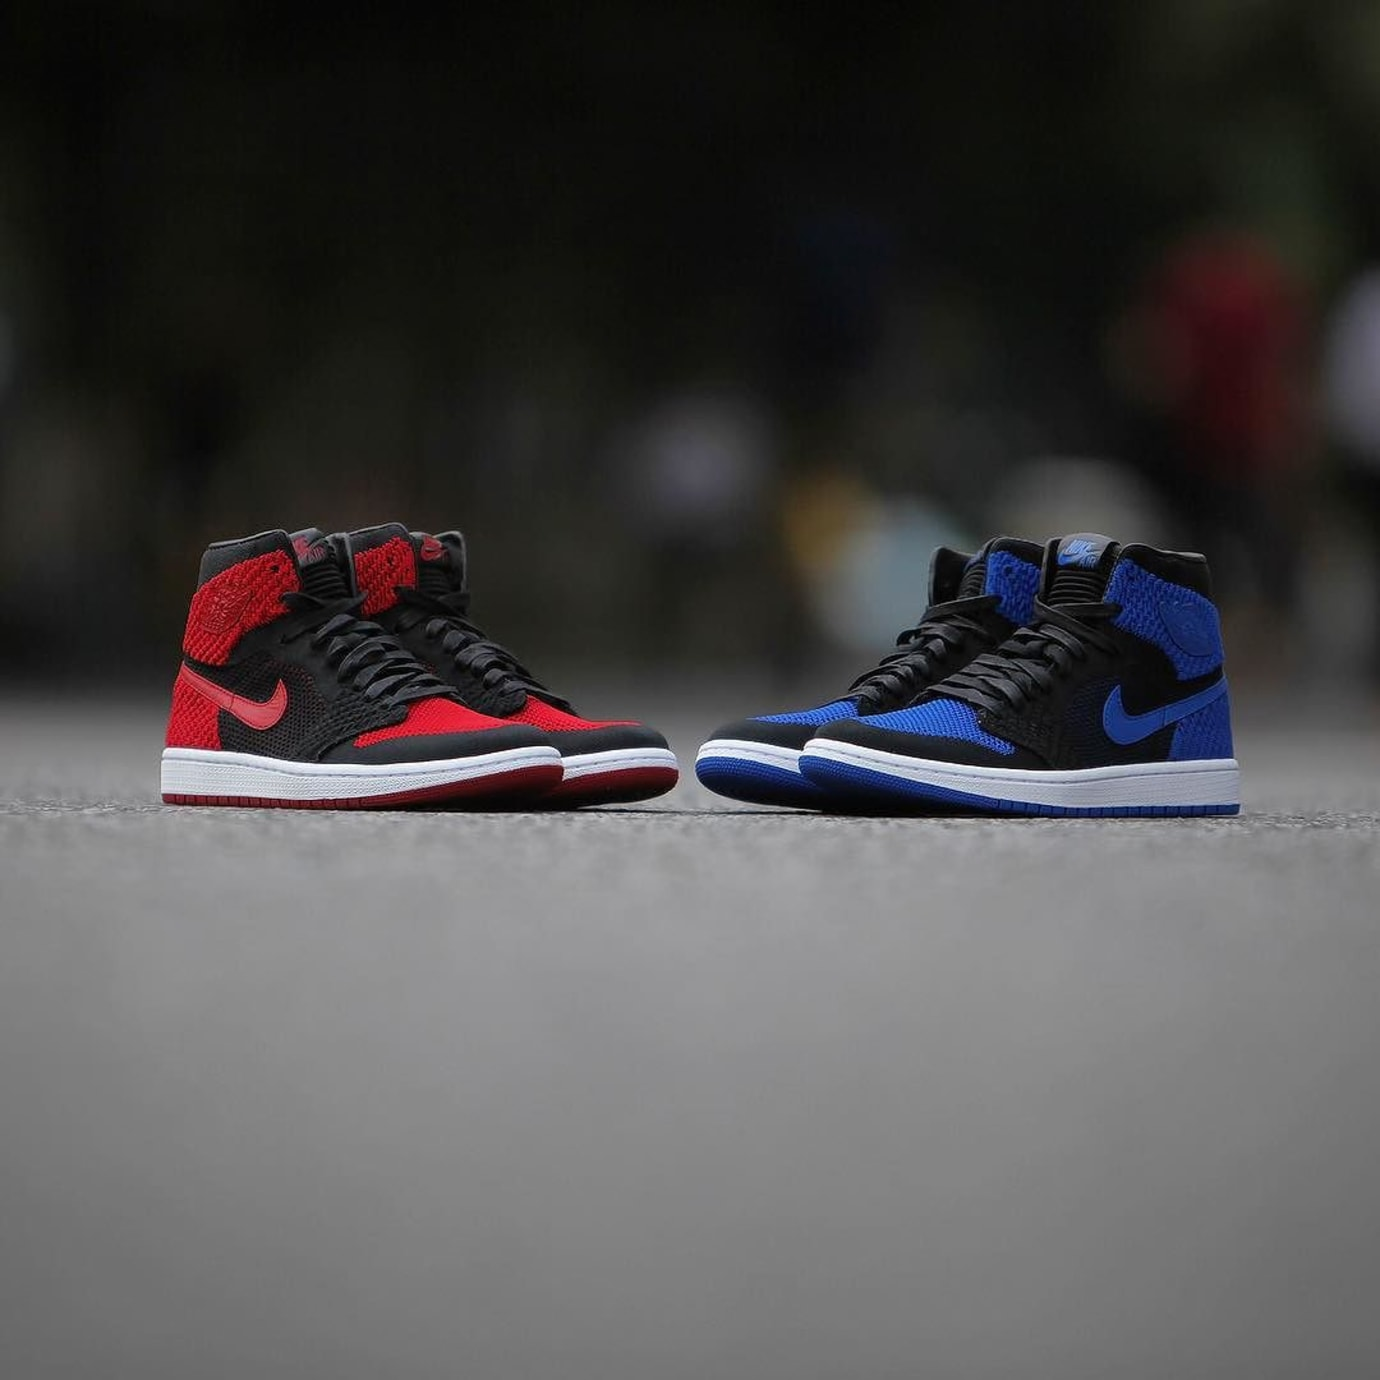 Air Jordan 1 Flyknit Royal Release Date 919704-006 (21)